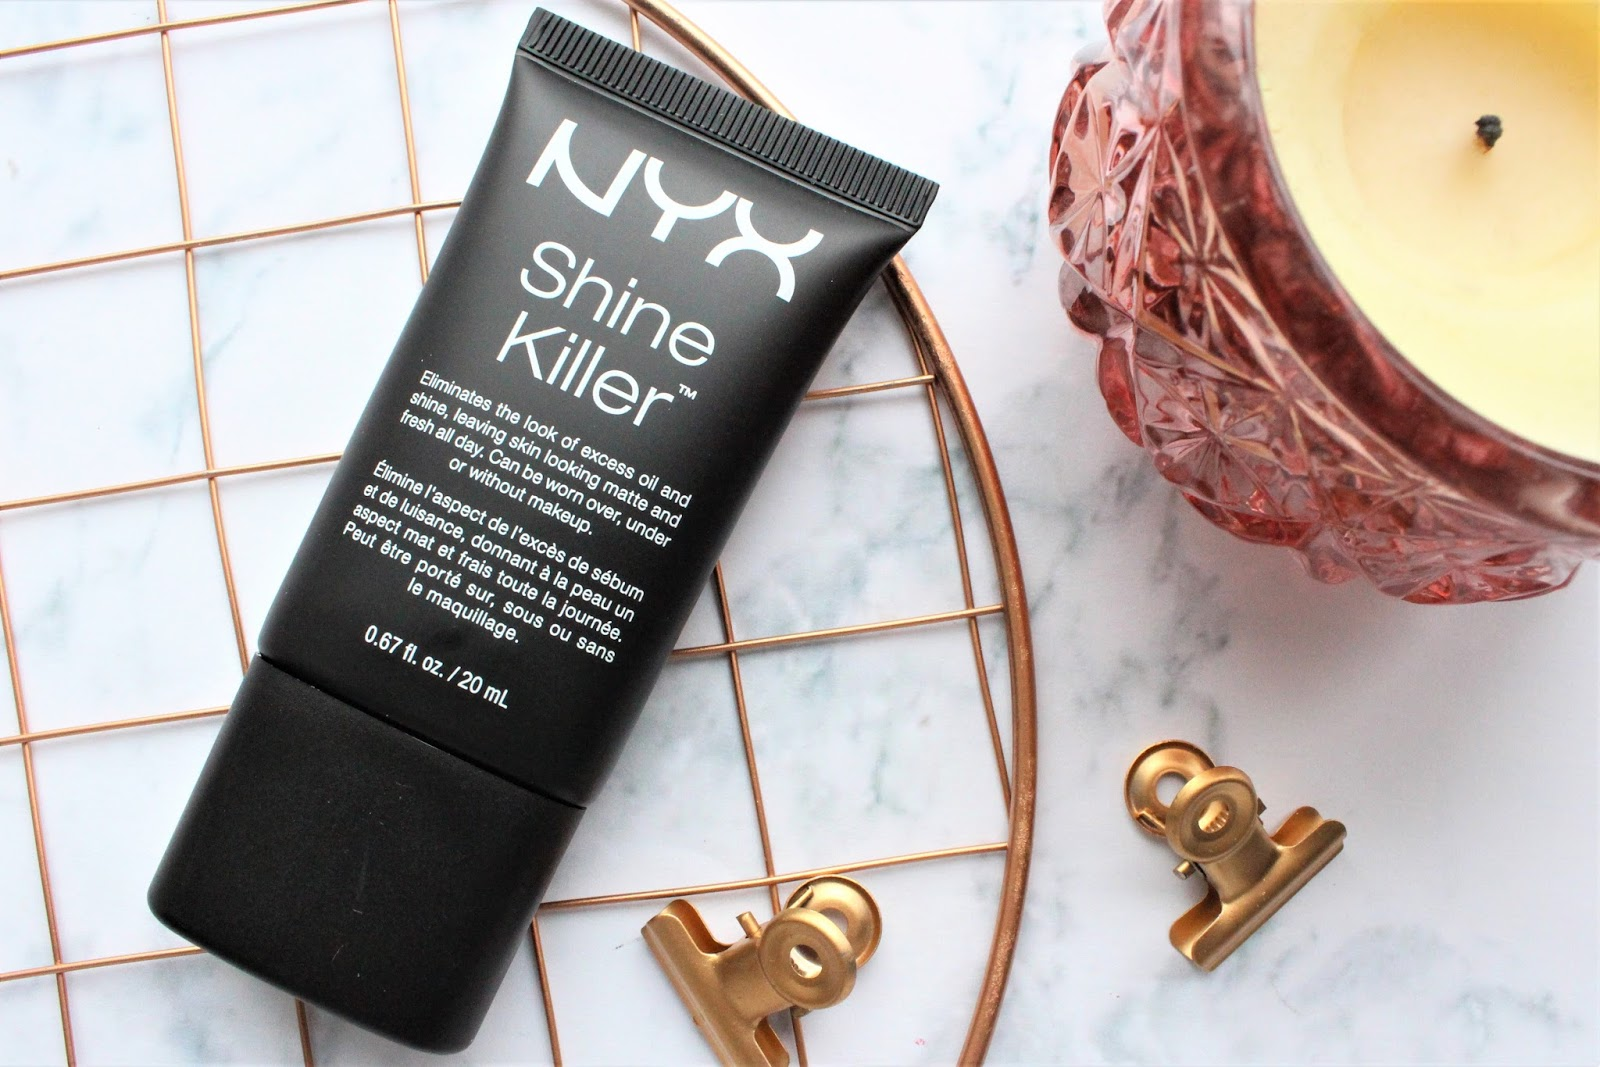 NYX shine killer primer review